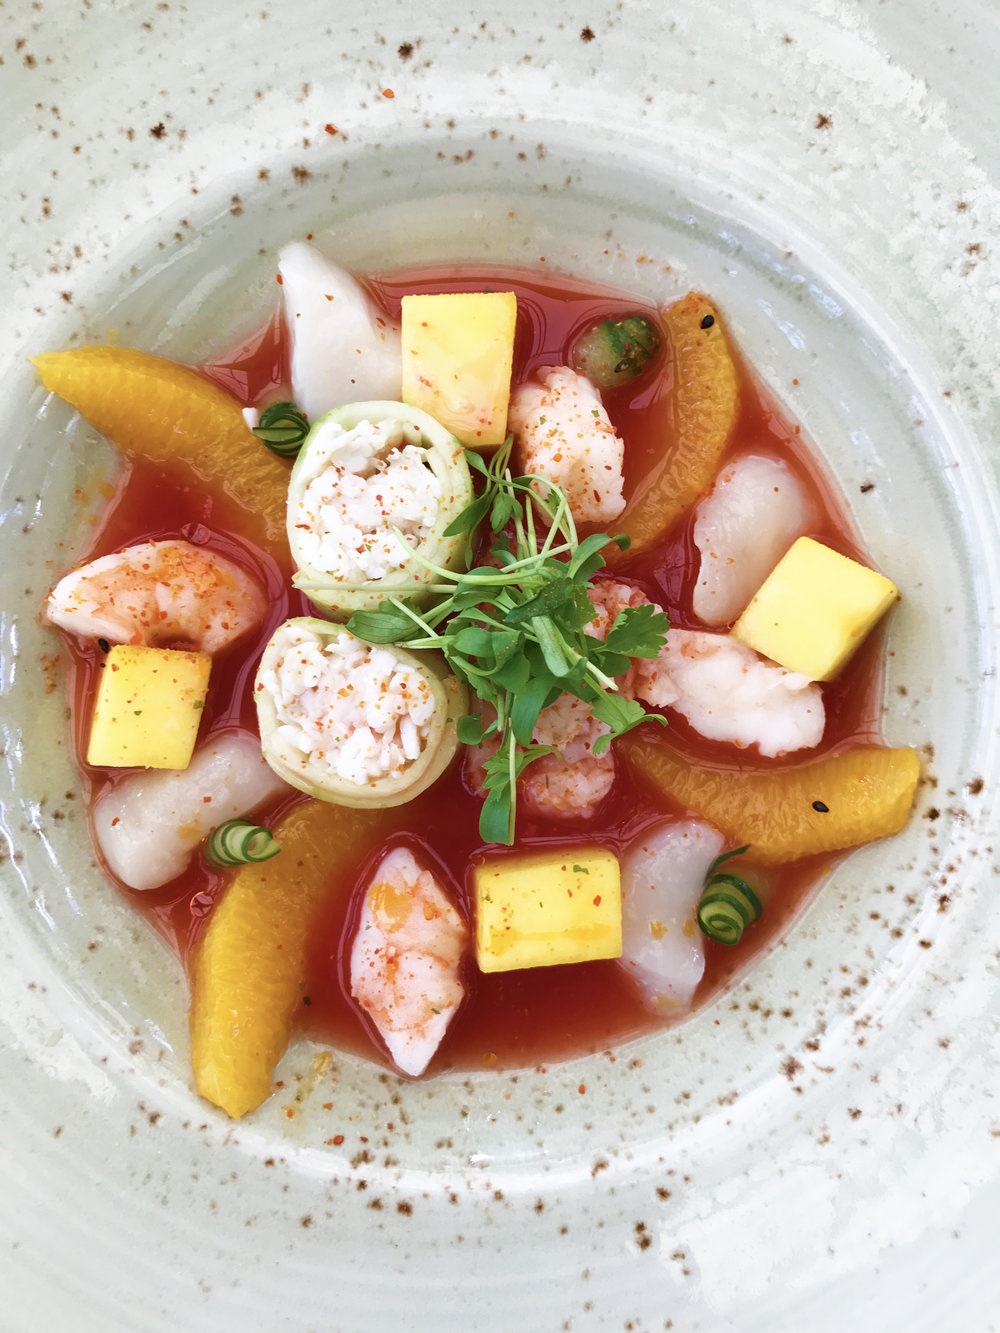 Catch Ceviche with king crab, lobster, shrimp, scallop, mango, blood orange, and ponzu